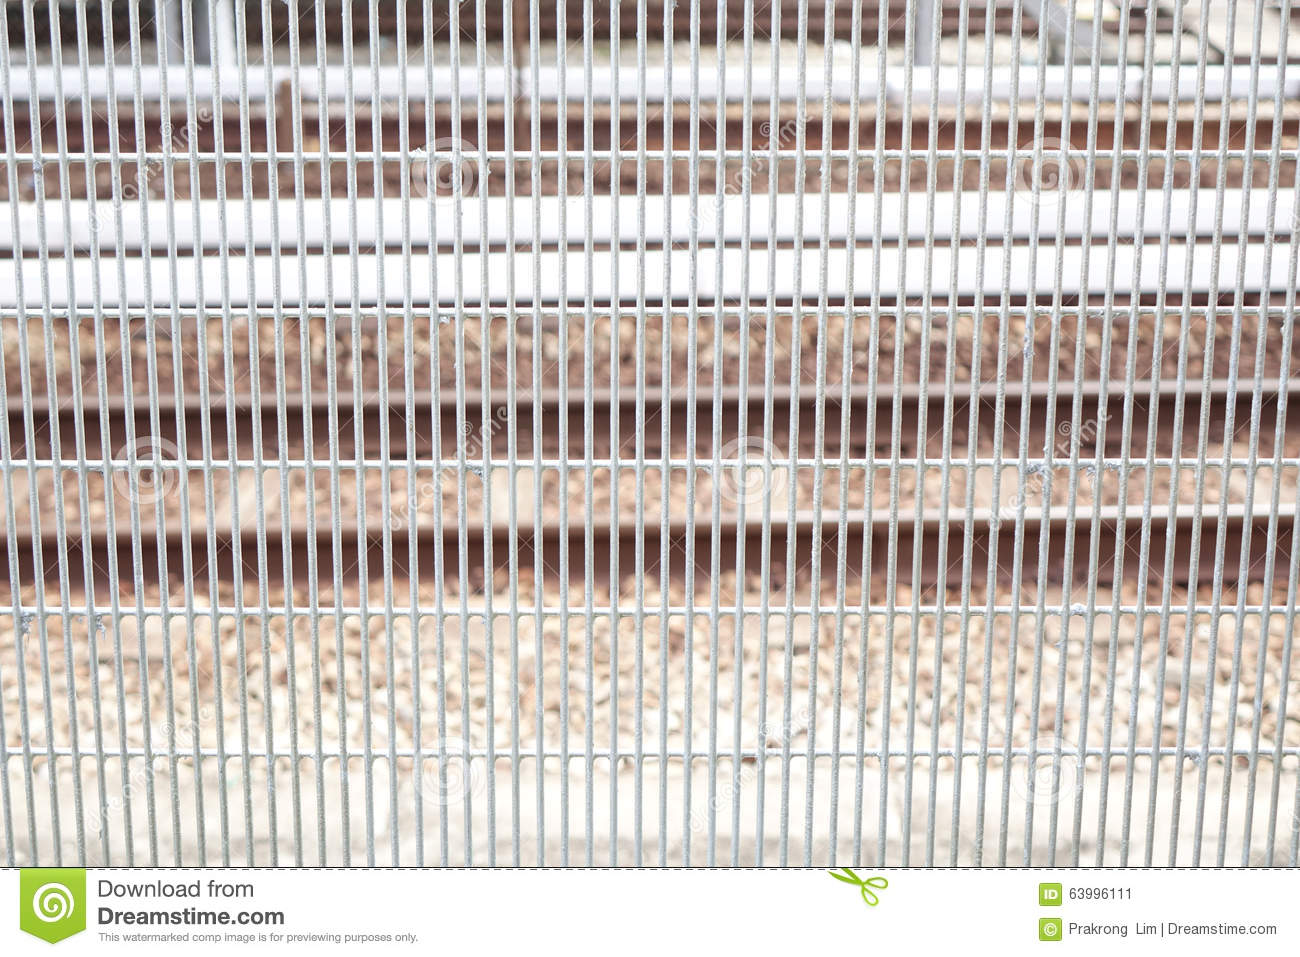 Metal Fence Of Train Station Stock Image - Image of rails, metal